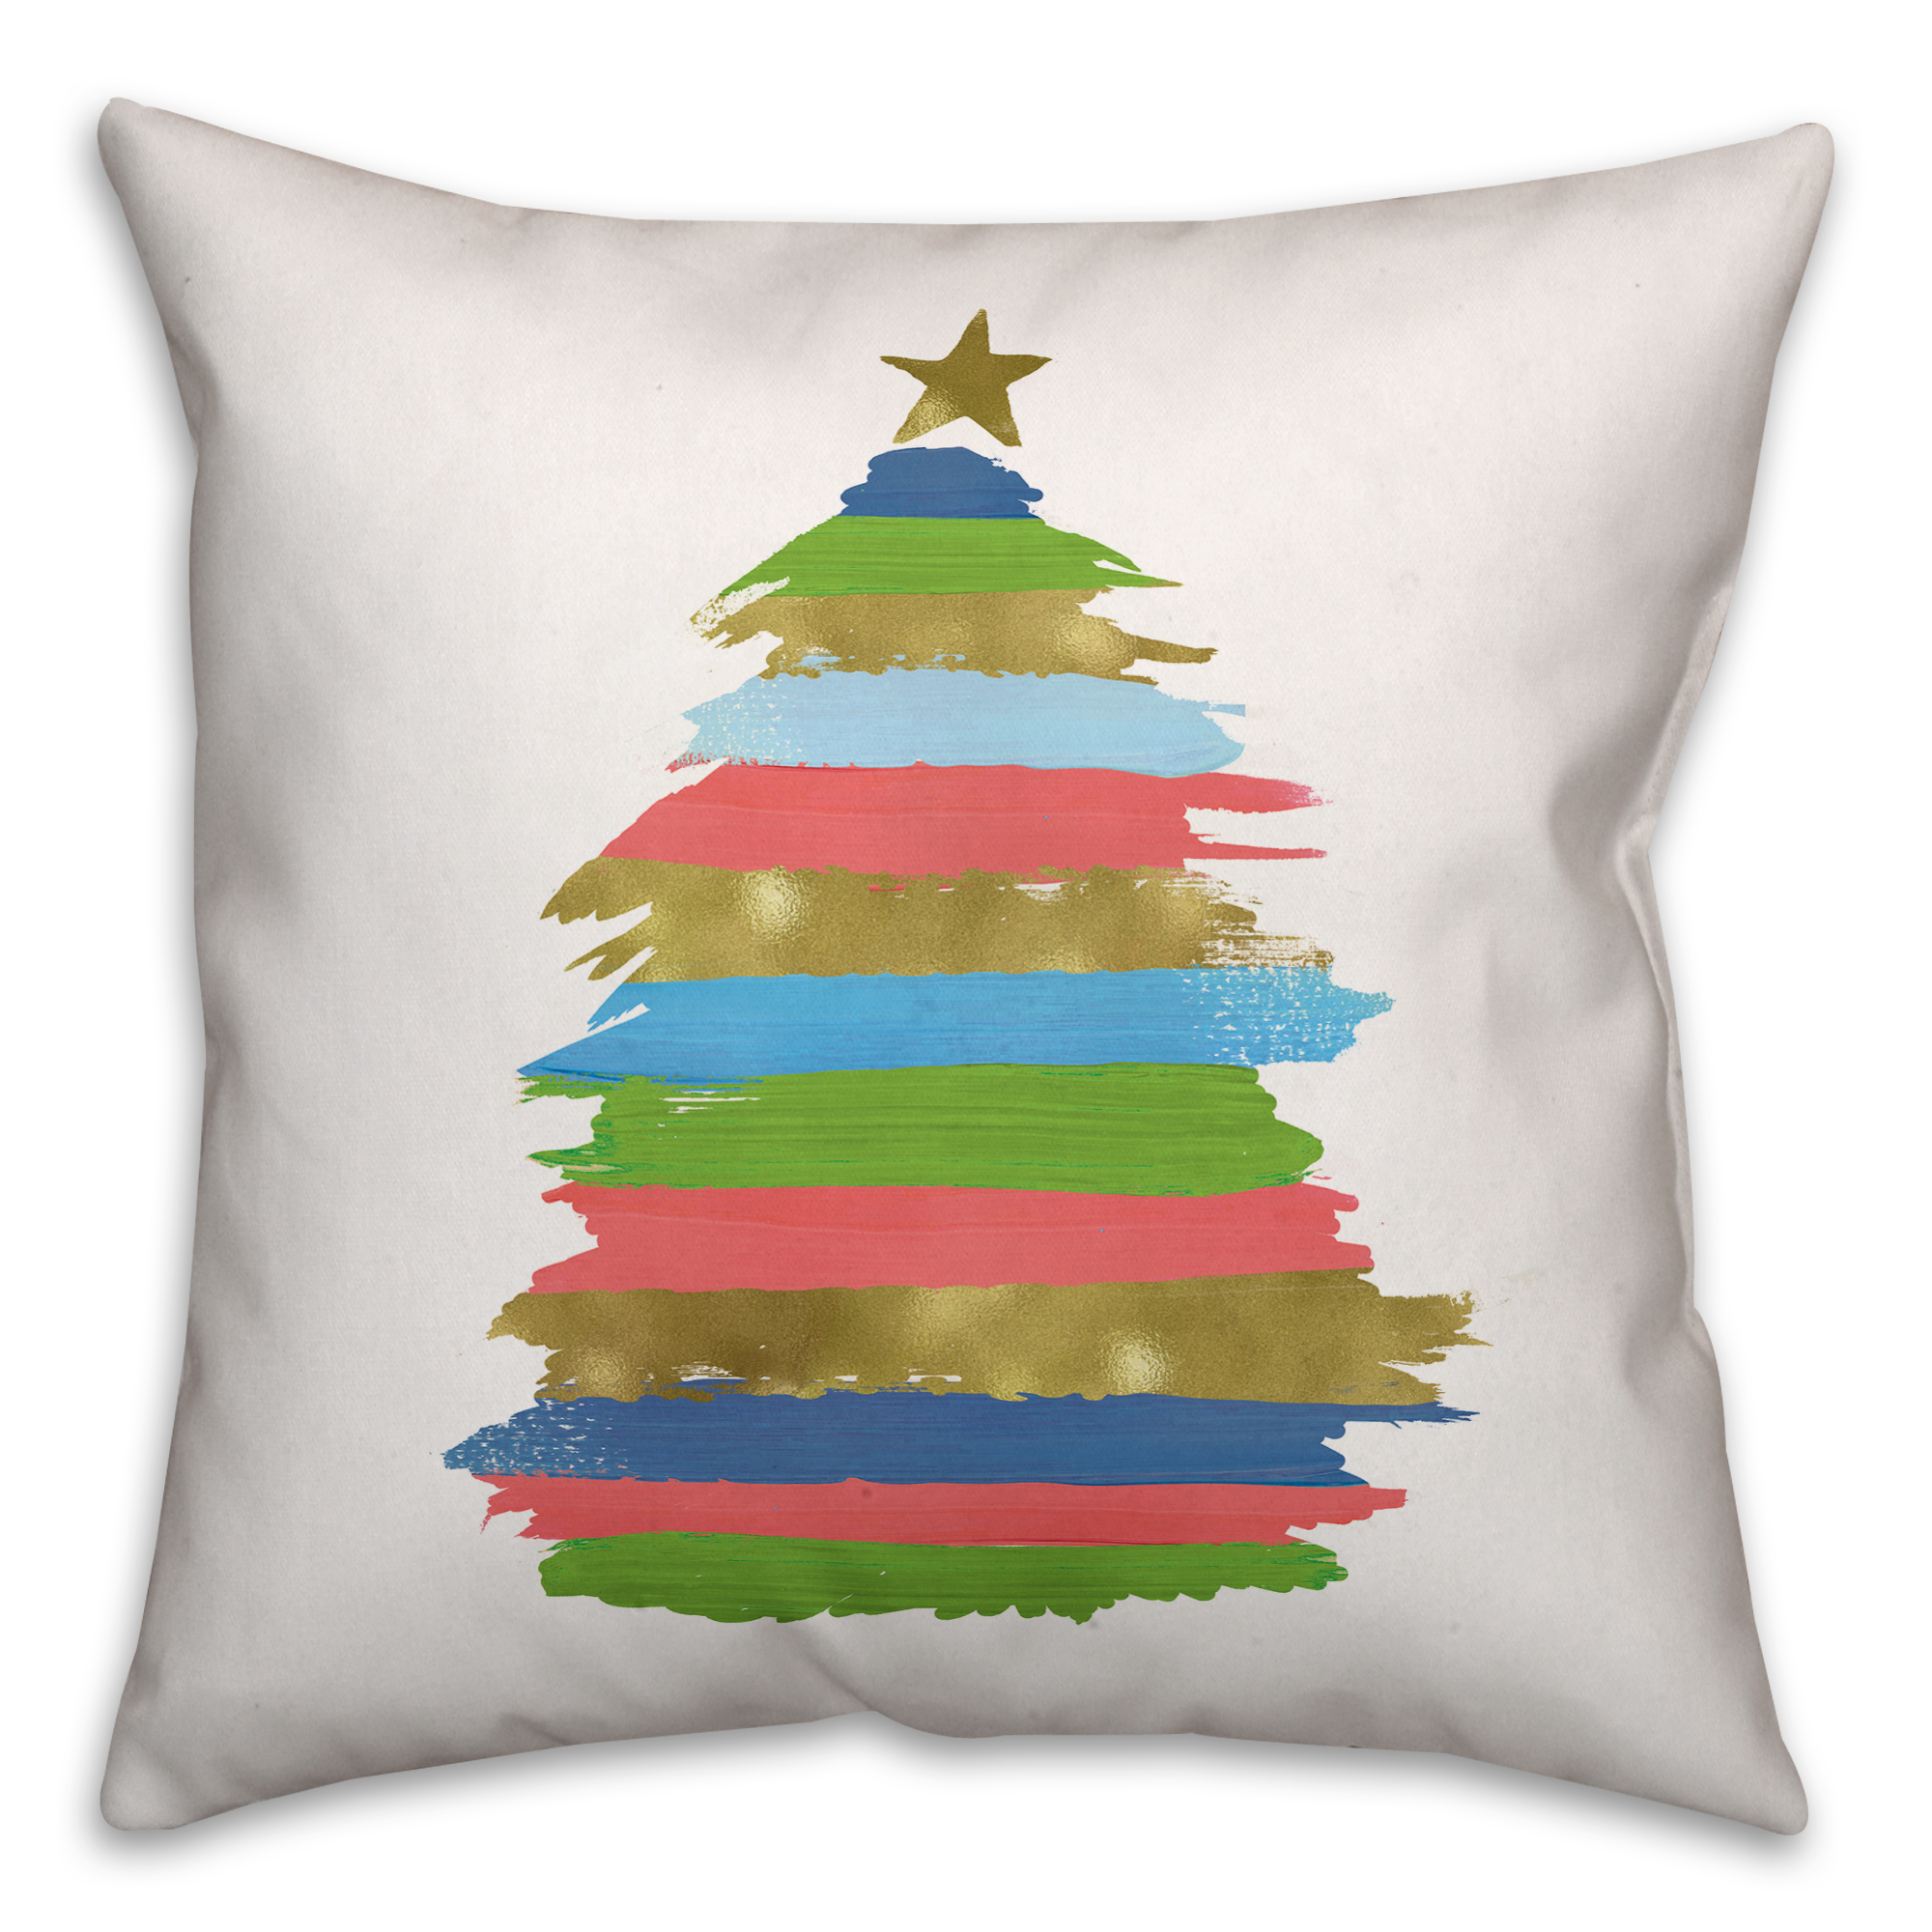 Colorful Christmas Tree 16x16 Spun Poly Pillow